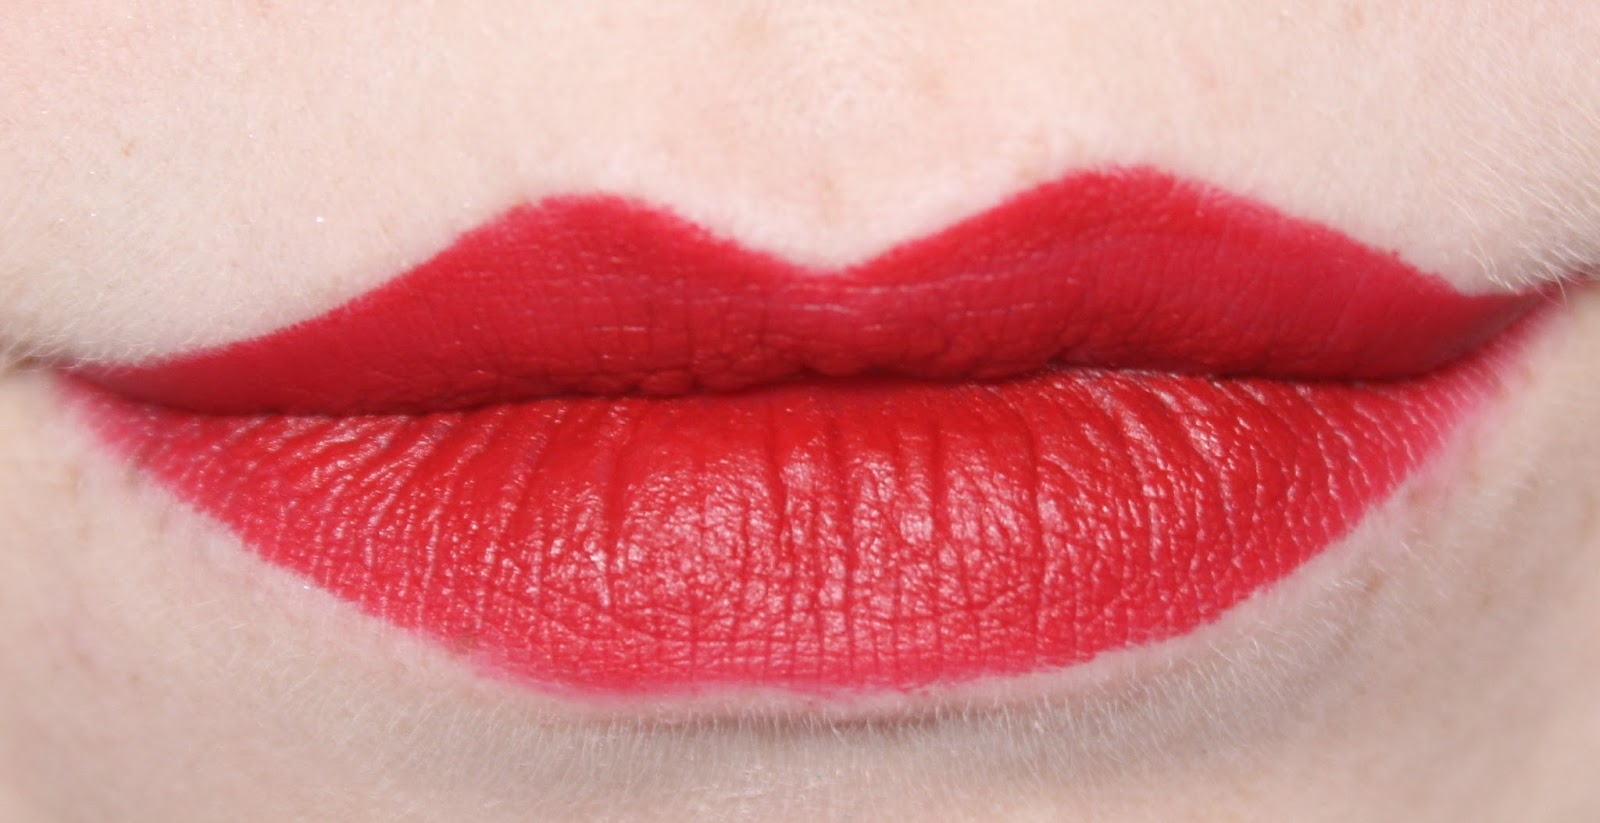 Mac Lipstick in Russian Red